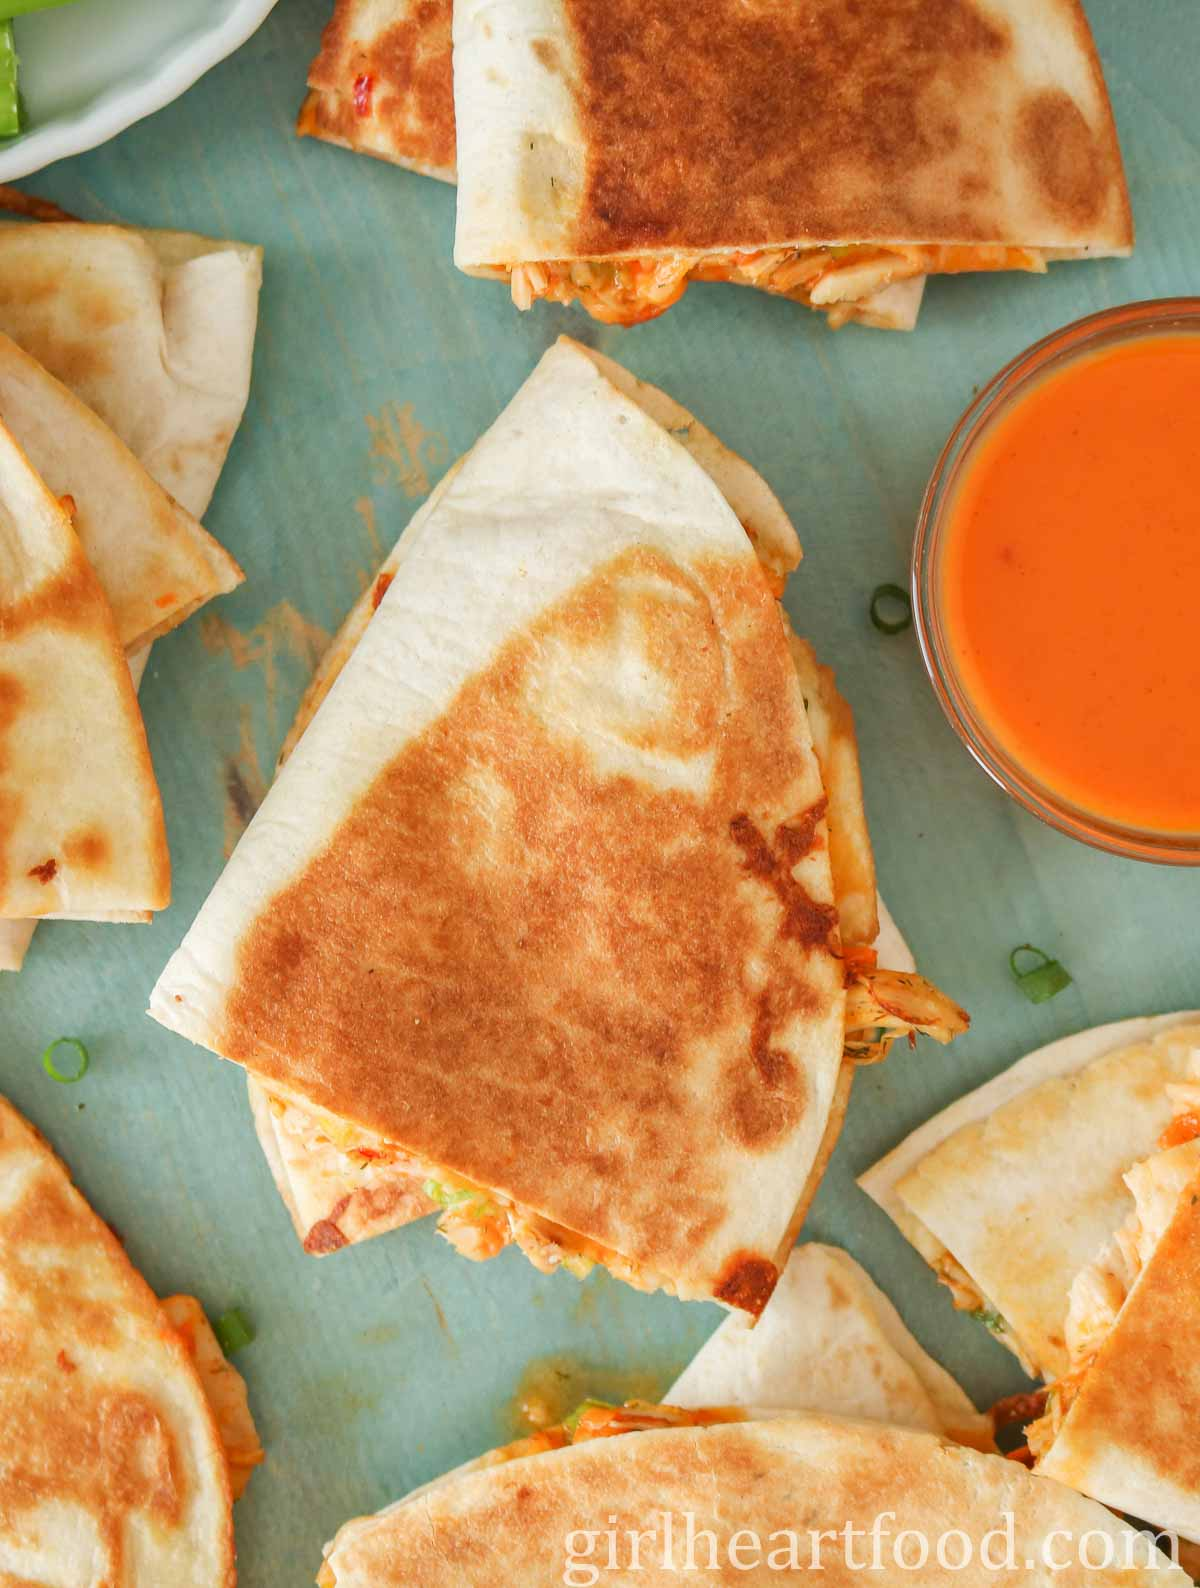 Crispy quesadillas on a blue board next to a small dish of buffalo hot sauce.